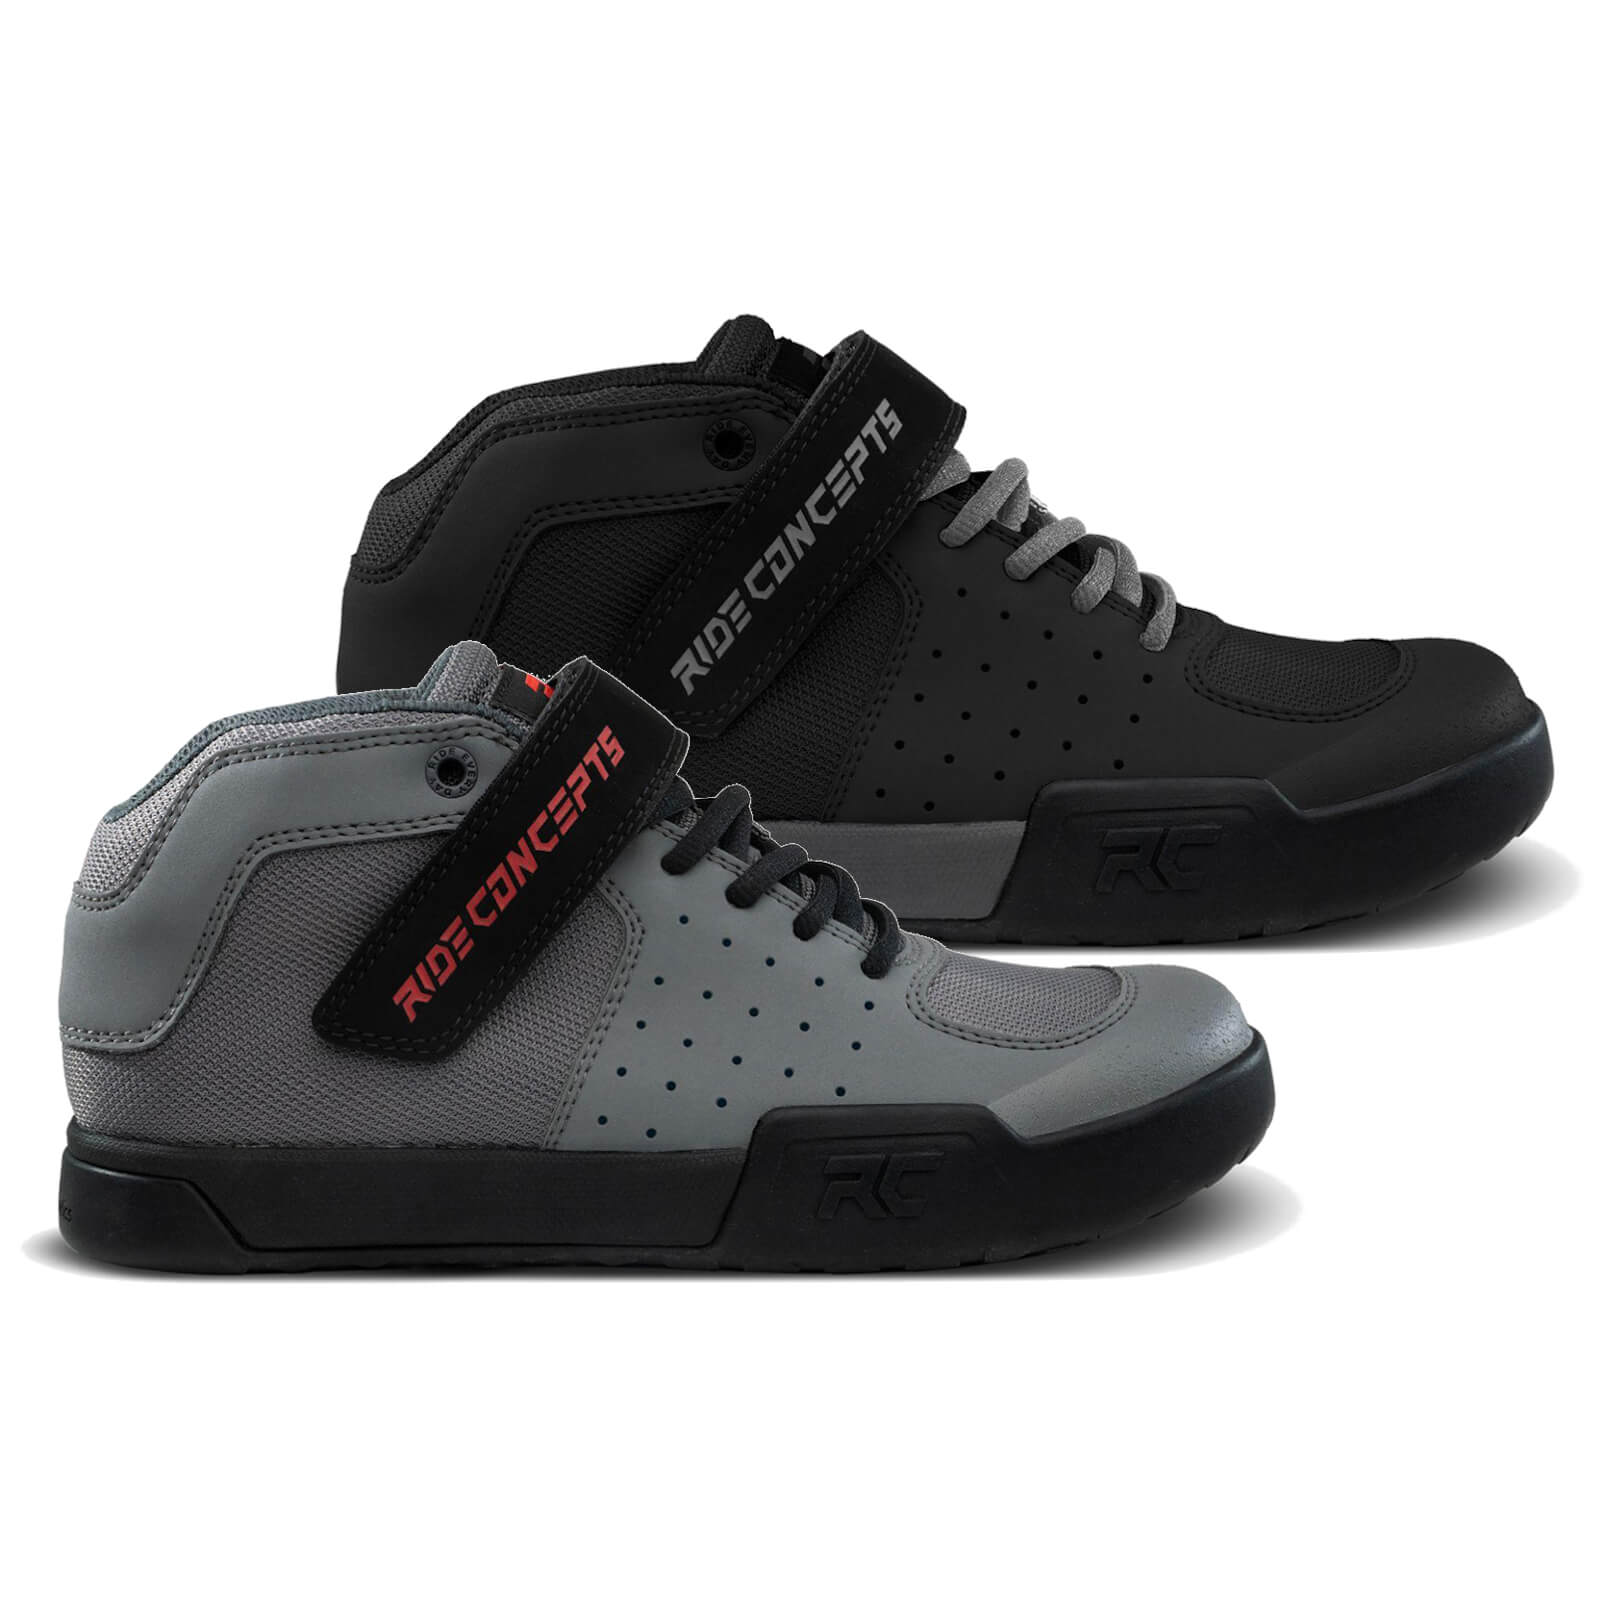 Ride Concepts Youth Wildcat Flat MTB Shoes - UK 5/EU 38 - Charcoal/Red